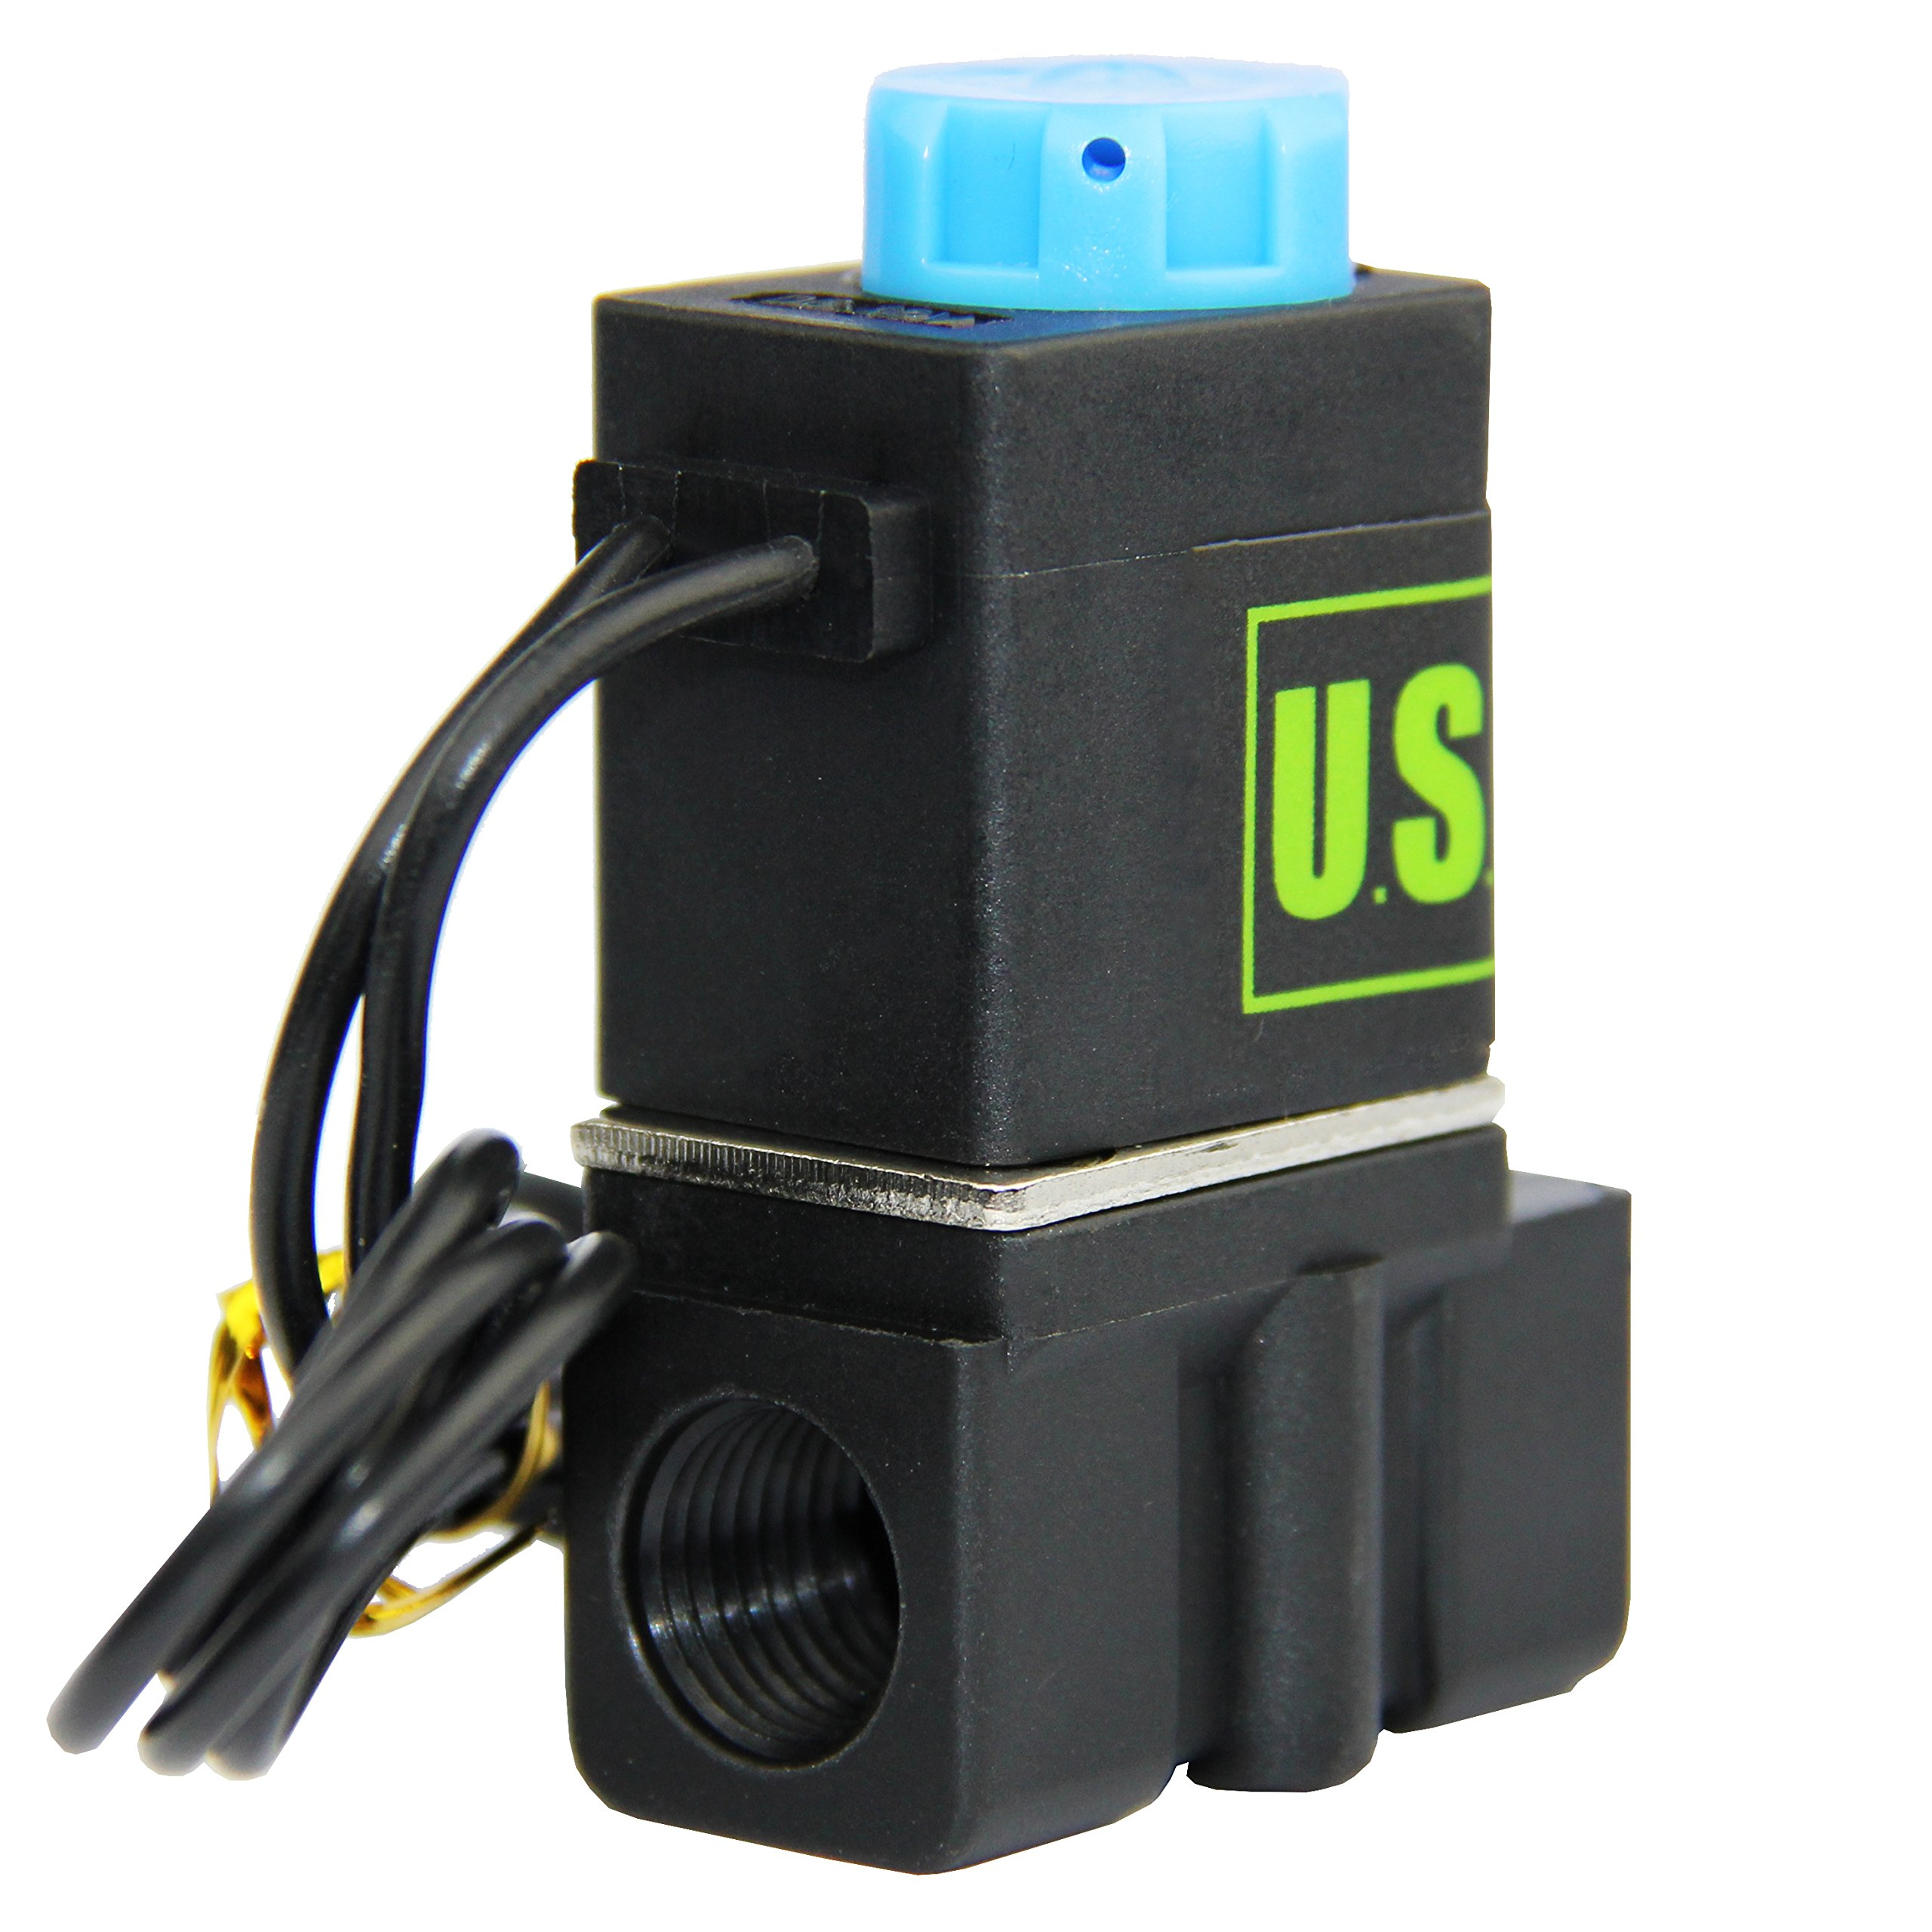 -NEW- Solenoid Valve 1/4'' Normally Closed (N.C.) 12VDC Nylon (NEW Improved Crack-resistant Polymer) Blue Cap by U.S. Solid by U.S. Solid (Image #2)